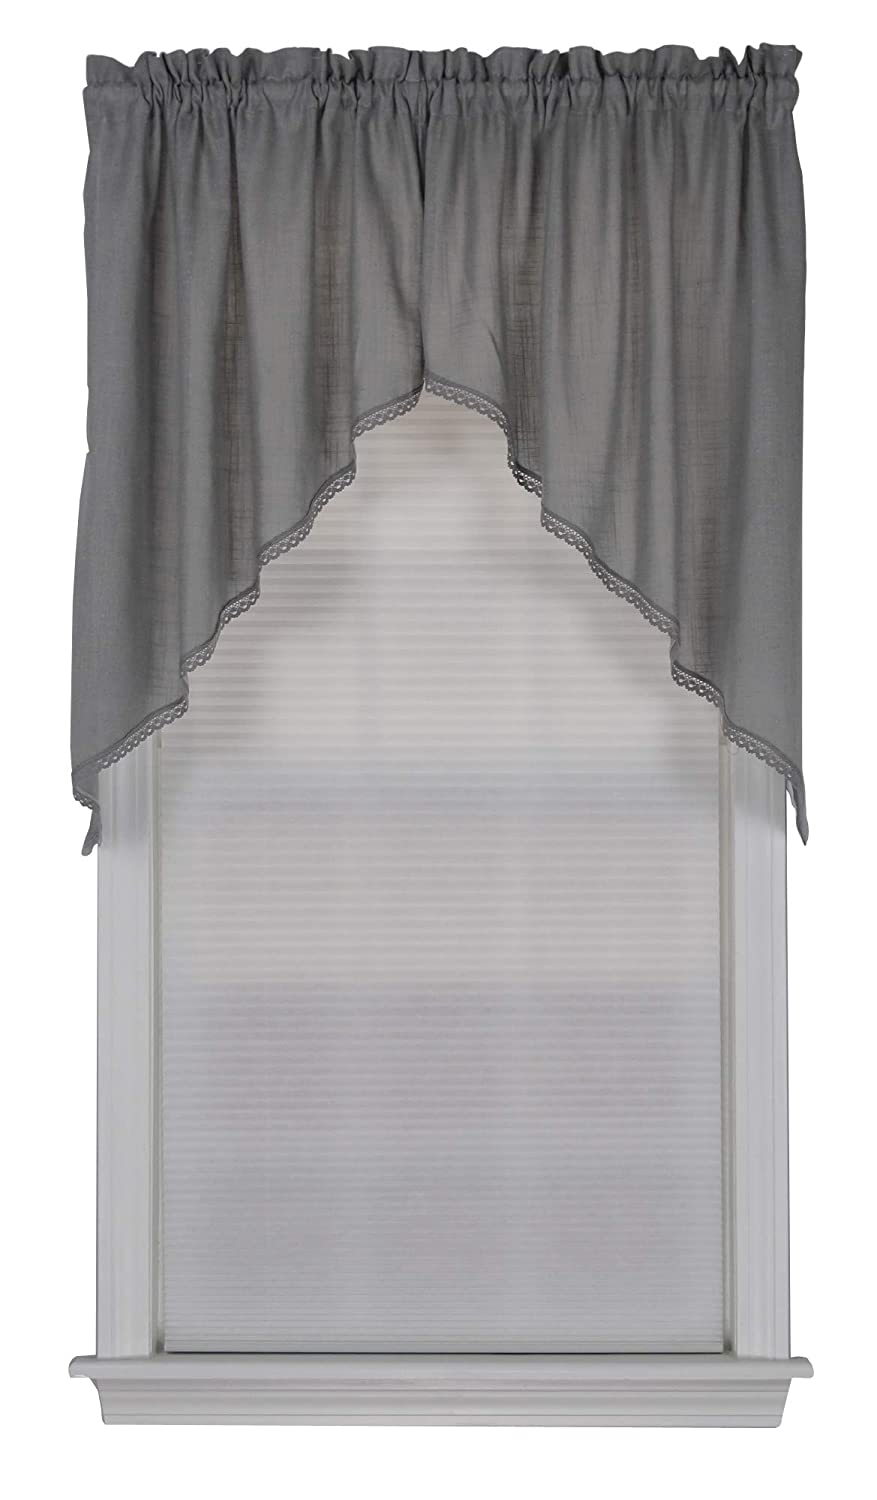 "Connemara Swag Curtain 72"" W x 38"" L (Gray)"